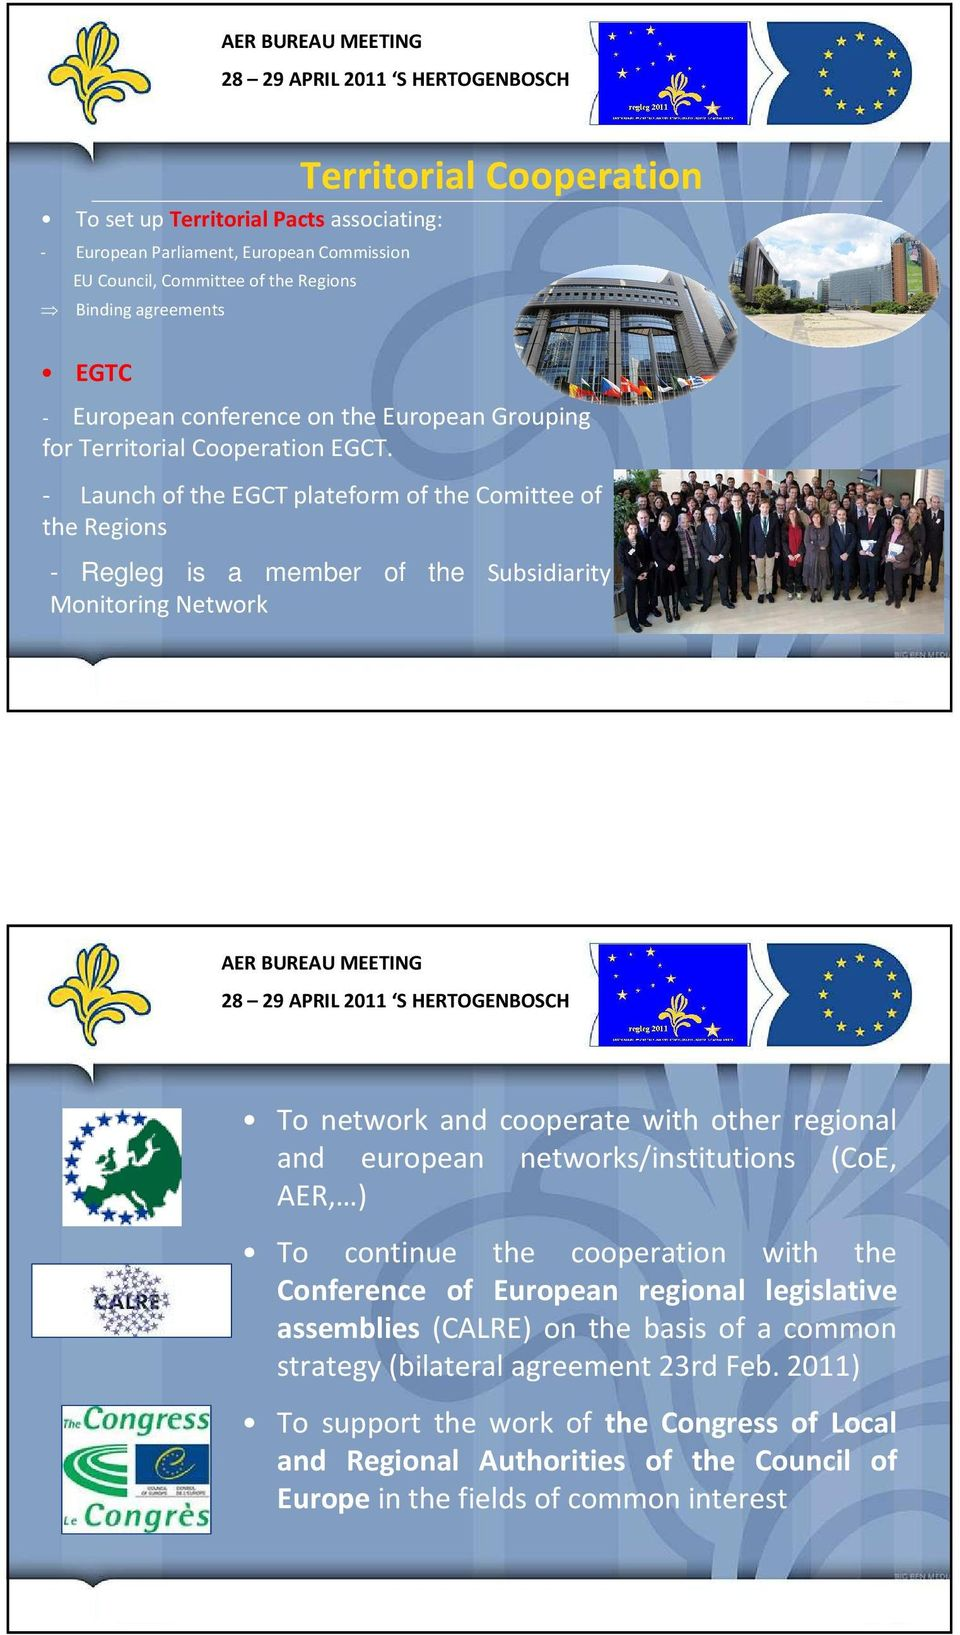 - Launchof the EGCT plateformof the Comitteeof the Regions - Regleg is a member of the Subsidiarity Monitoring Network To network and cooperate with other regional and european